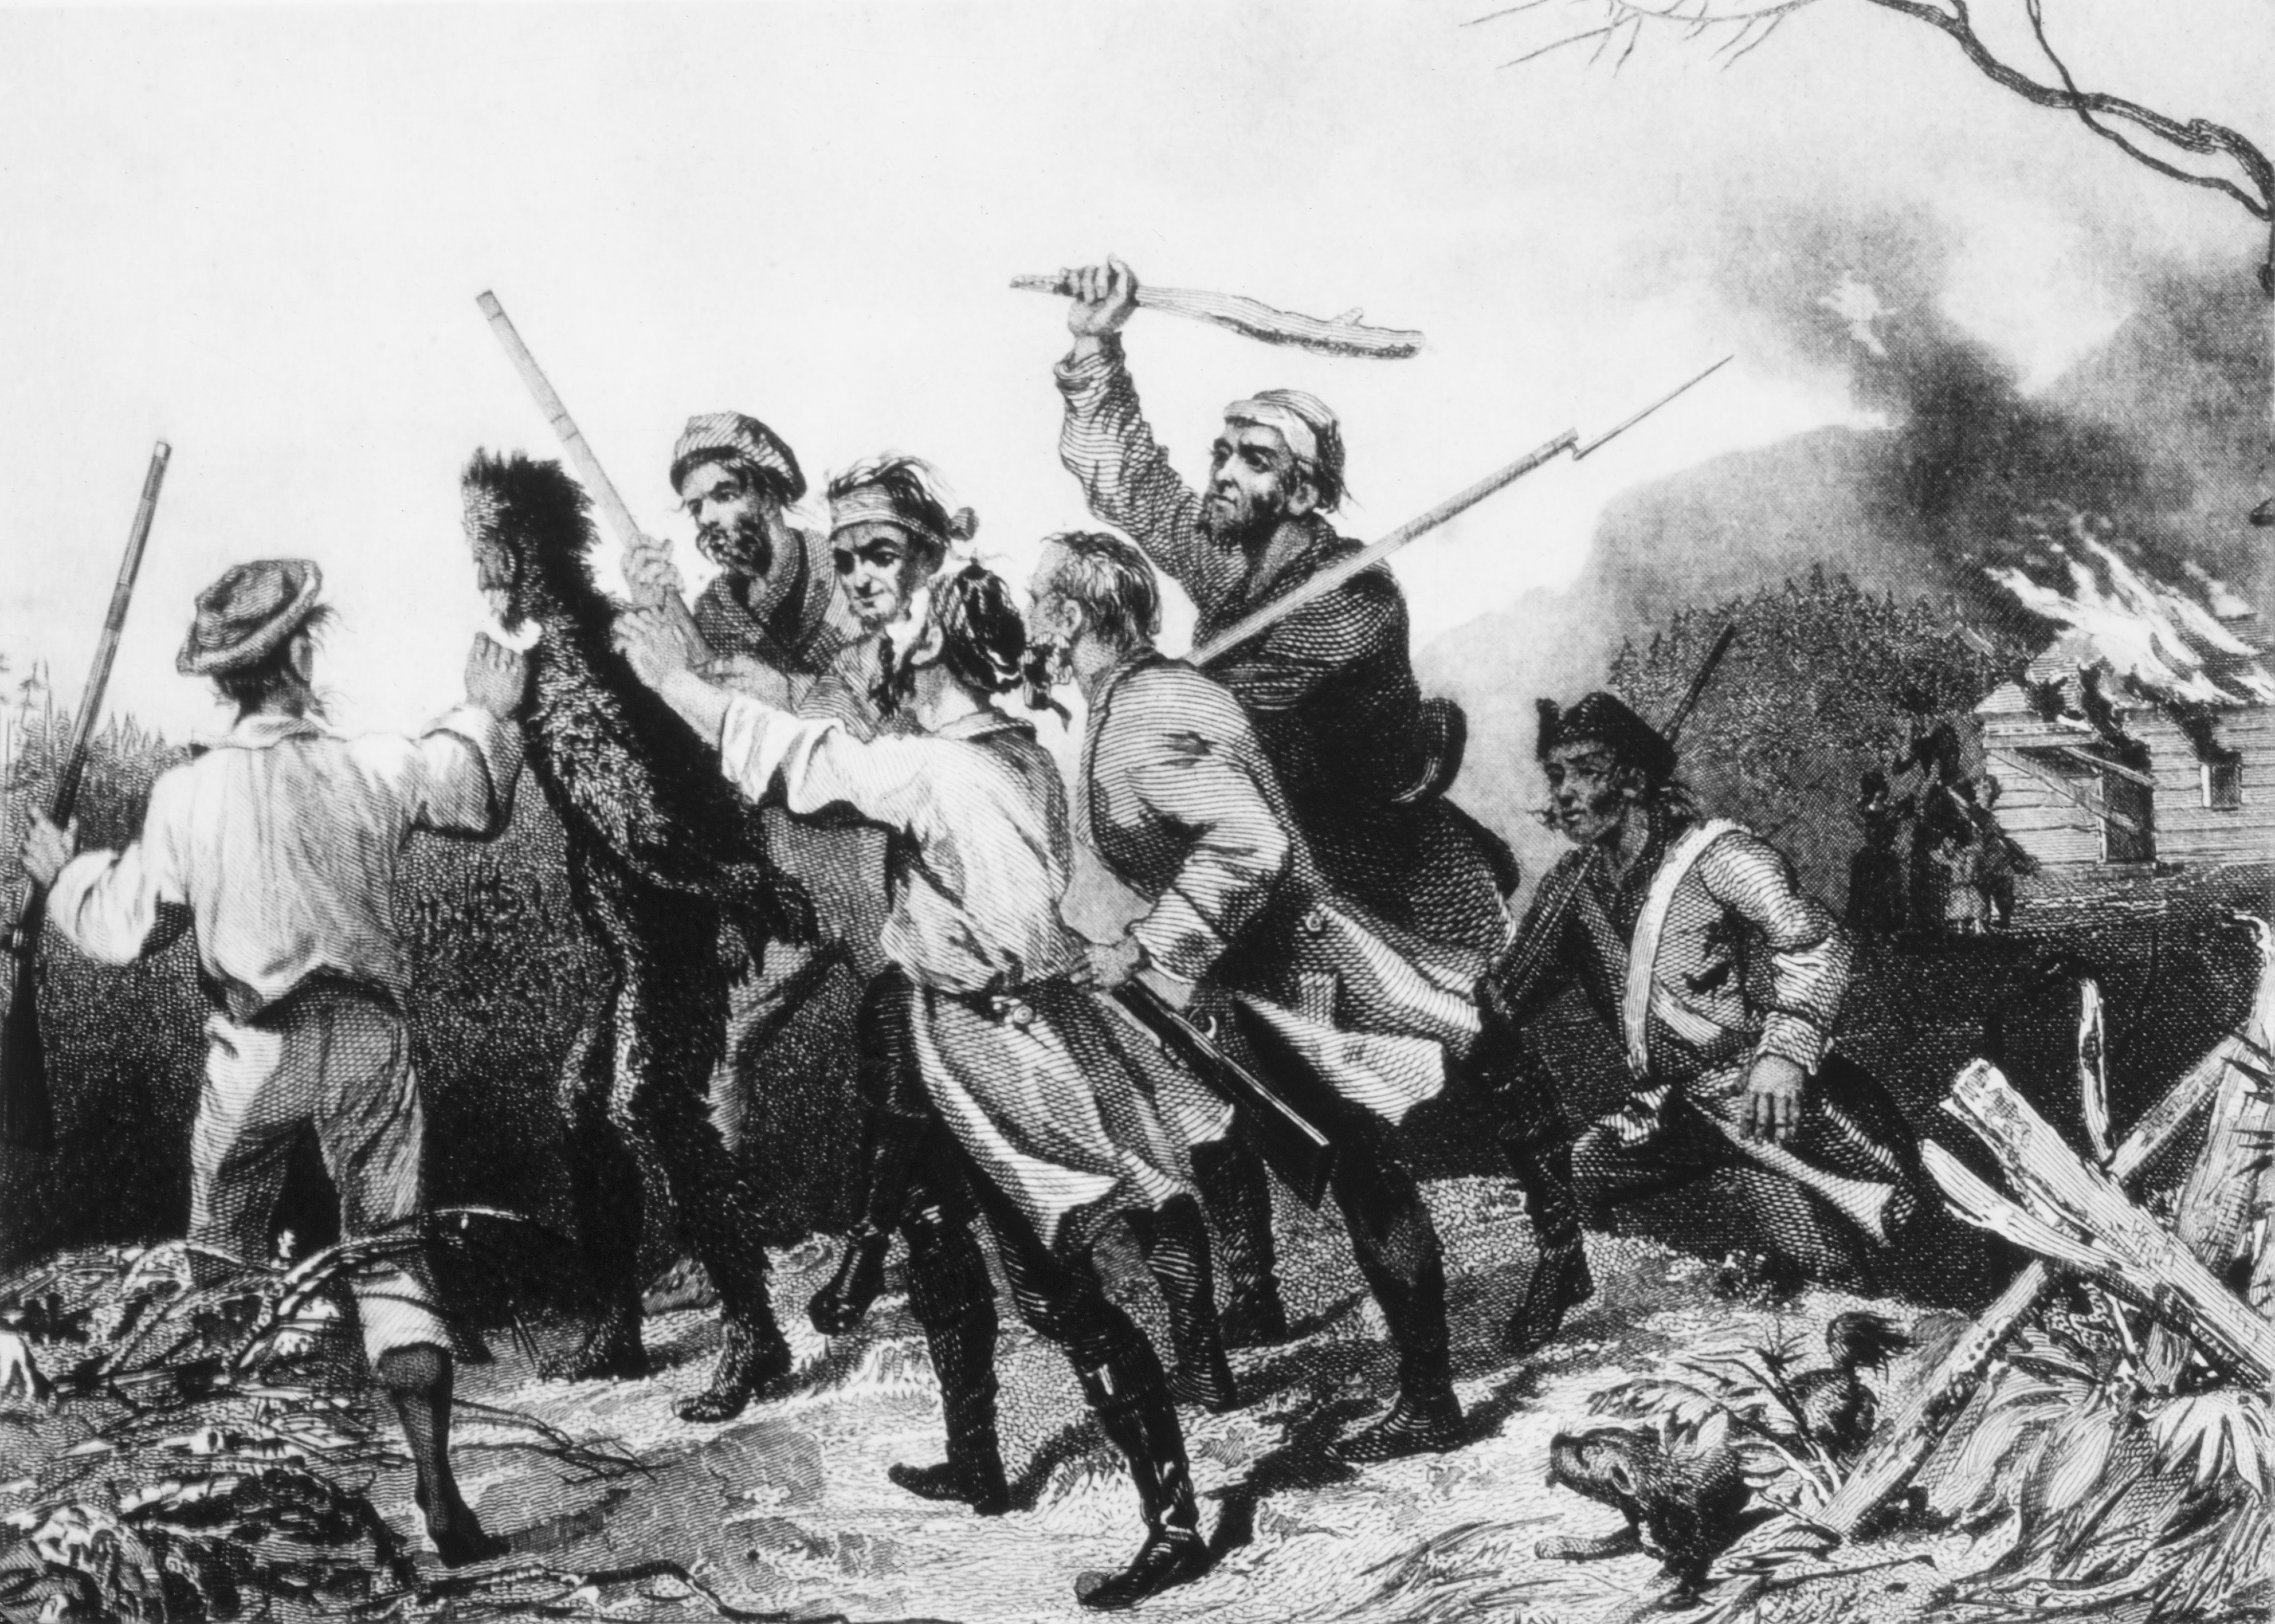 Rebels tarring and feathering a tax collector in western Pennsylvania during the Whiskey Rebellion, circa 1794.